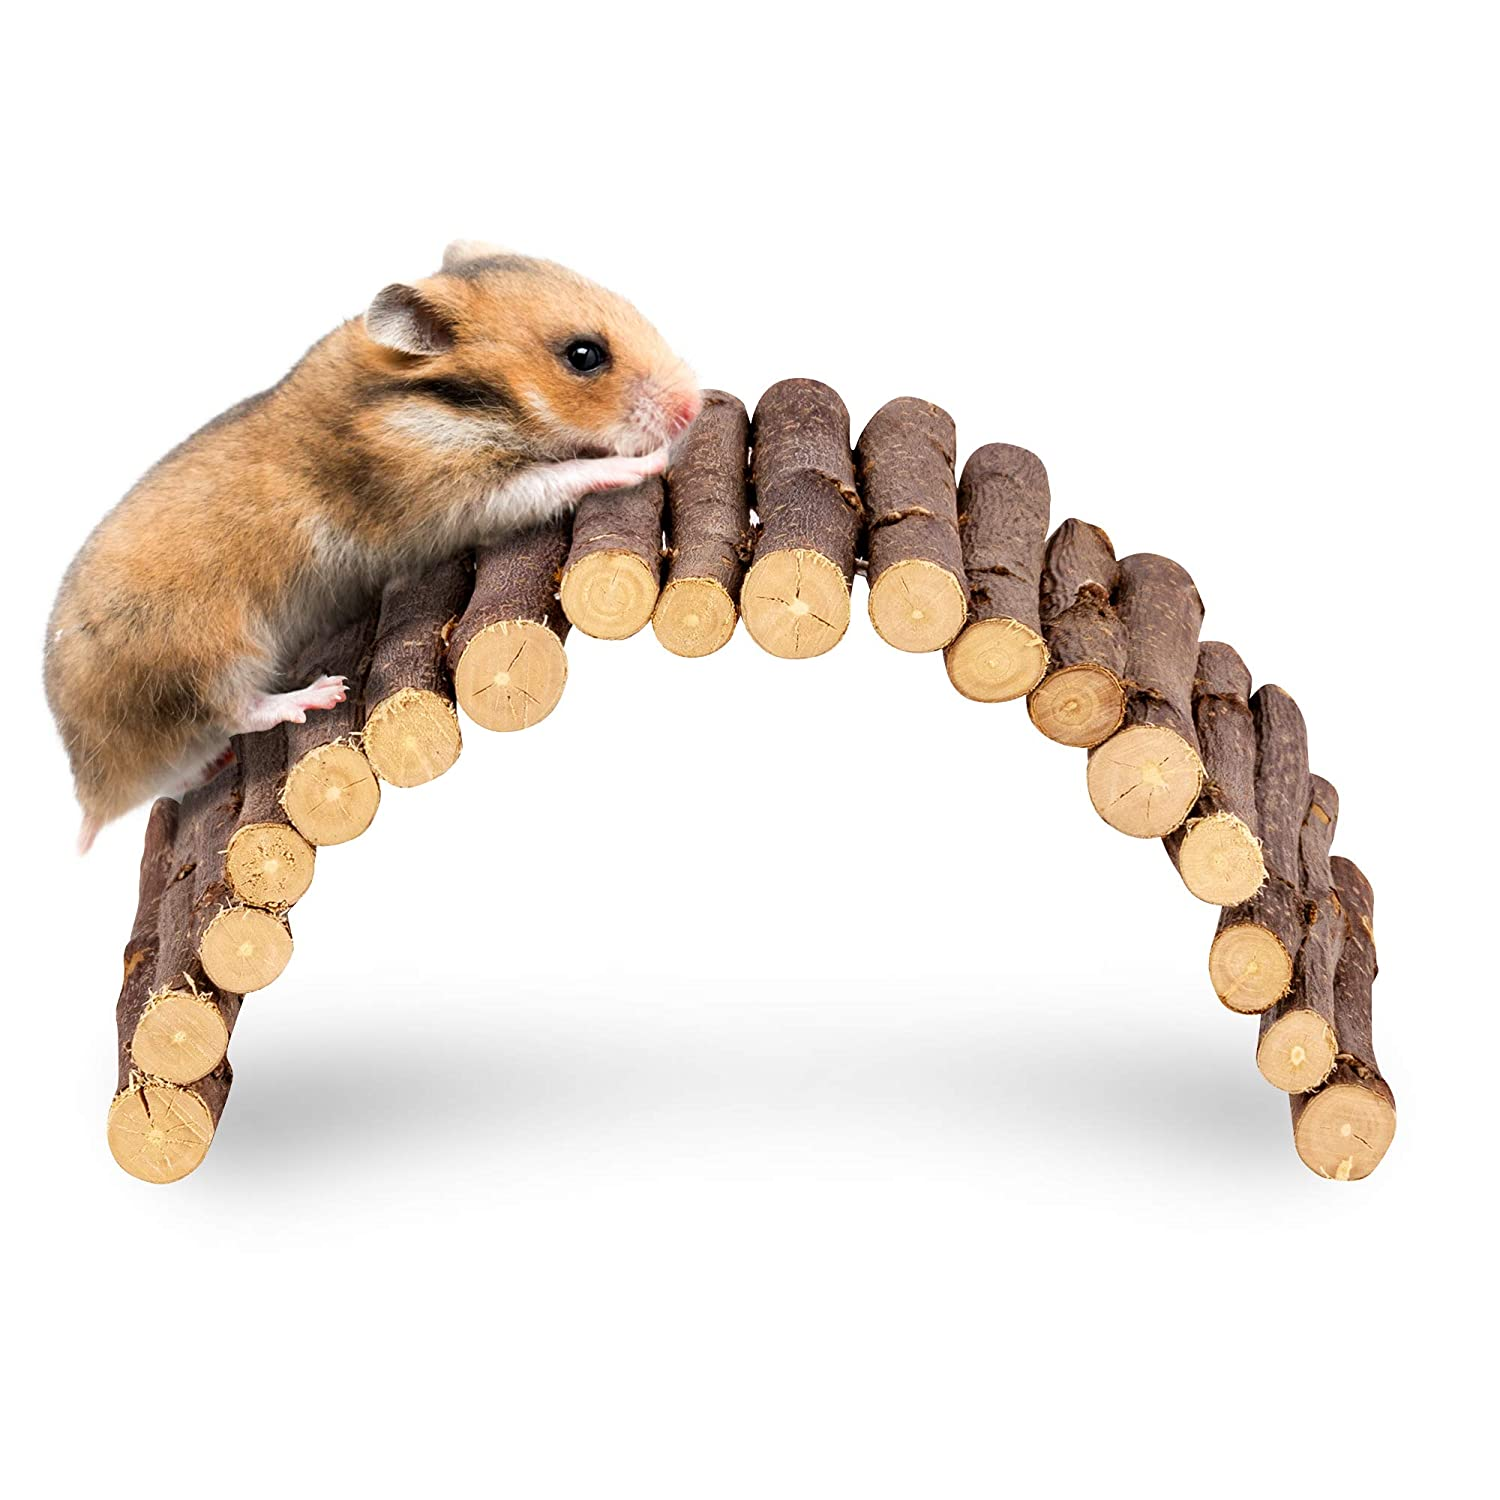 andwe Apple Twig Ladder Wooden Fun Bridge for Hamster Rats Sugar Gliders Mice Gerbils - Pet Cage Toys Habitat Decor